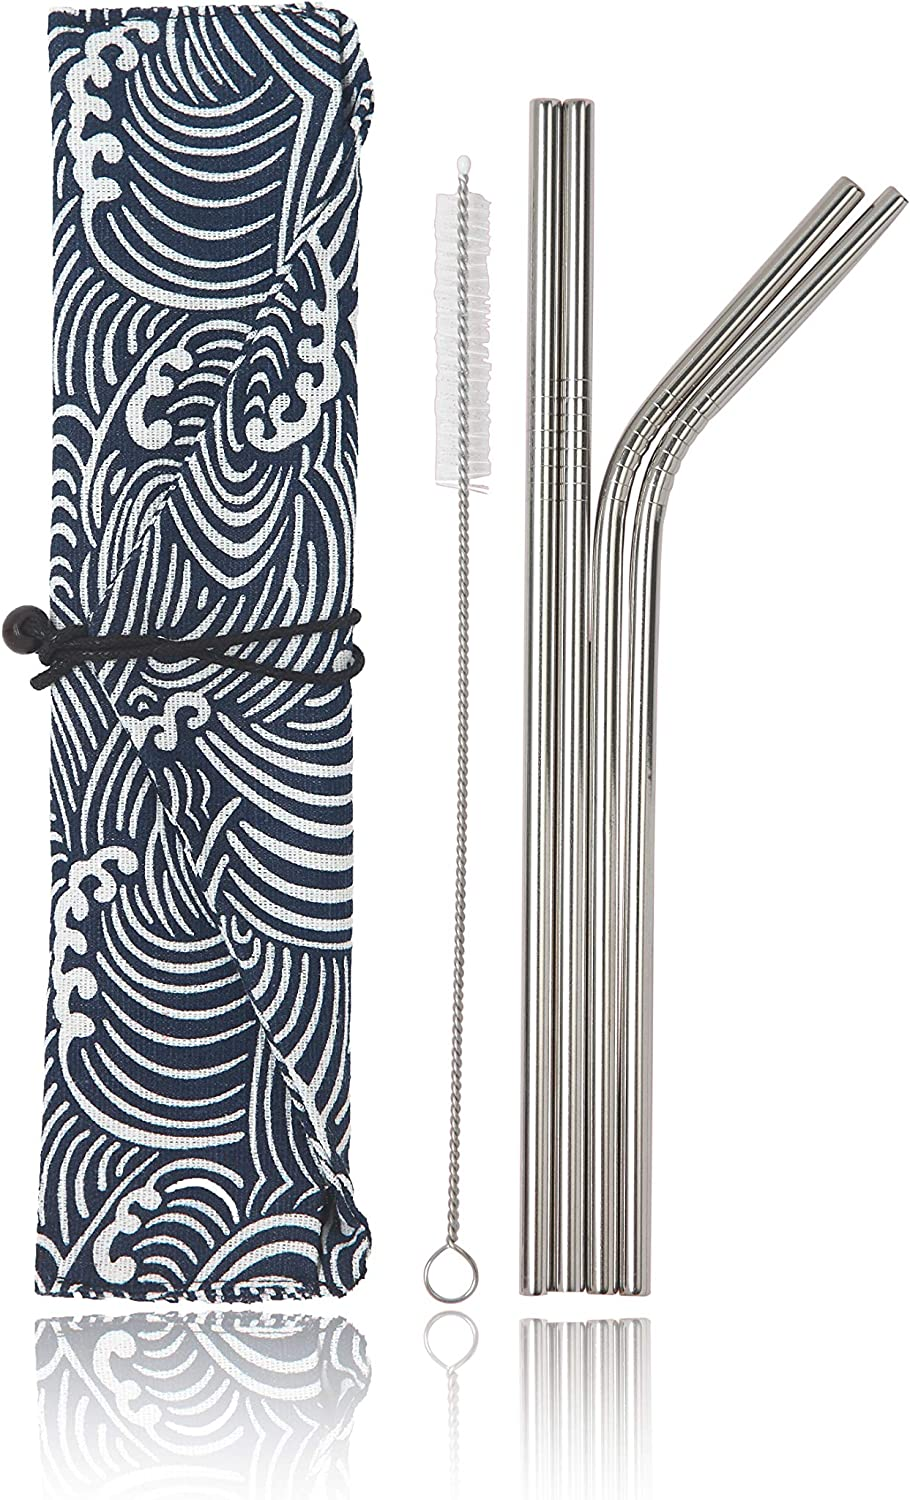 Stainless Steel Reusable Metal Straws - 4 Pack 8.5 inch Portable Food Grade